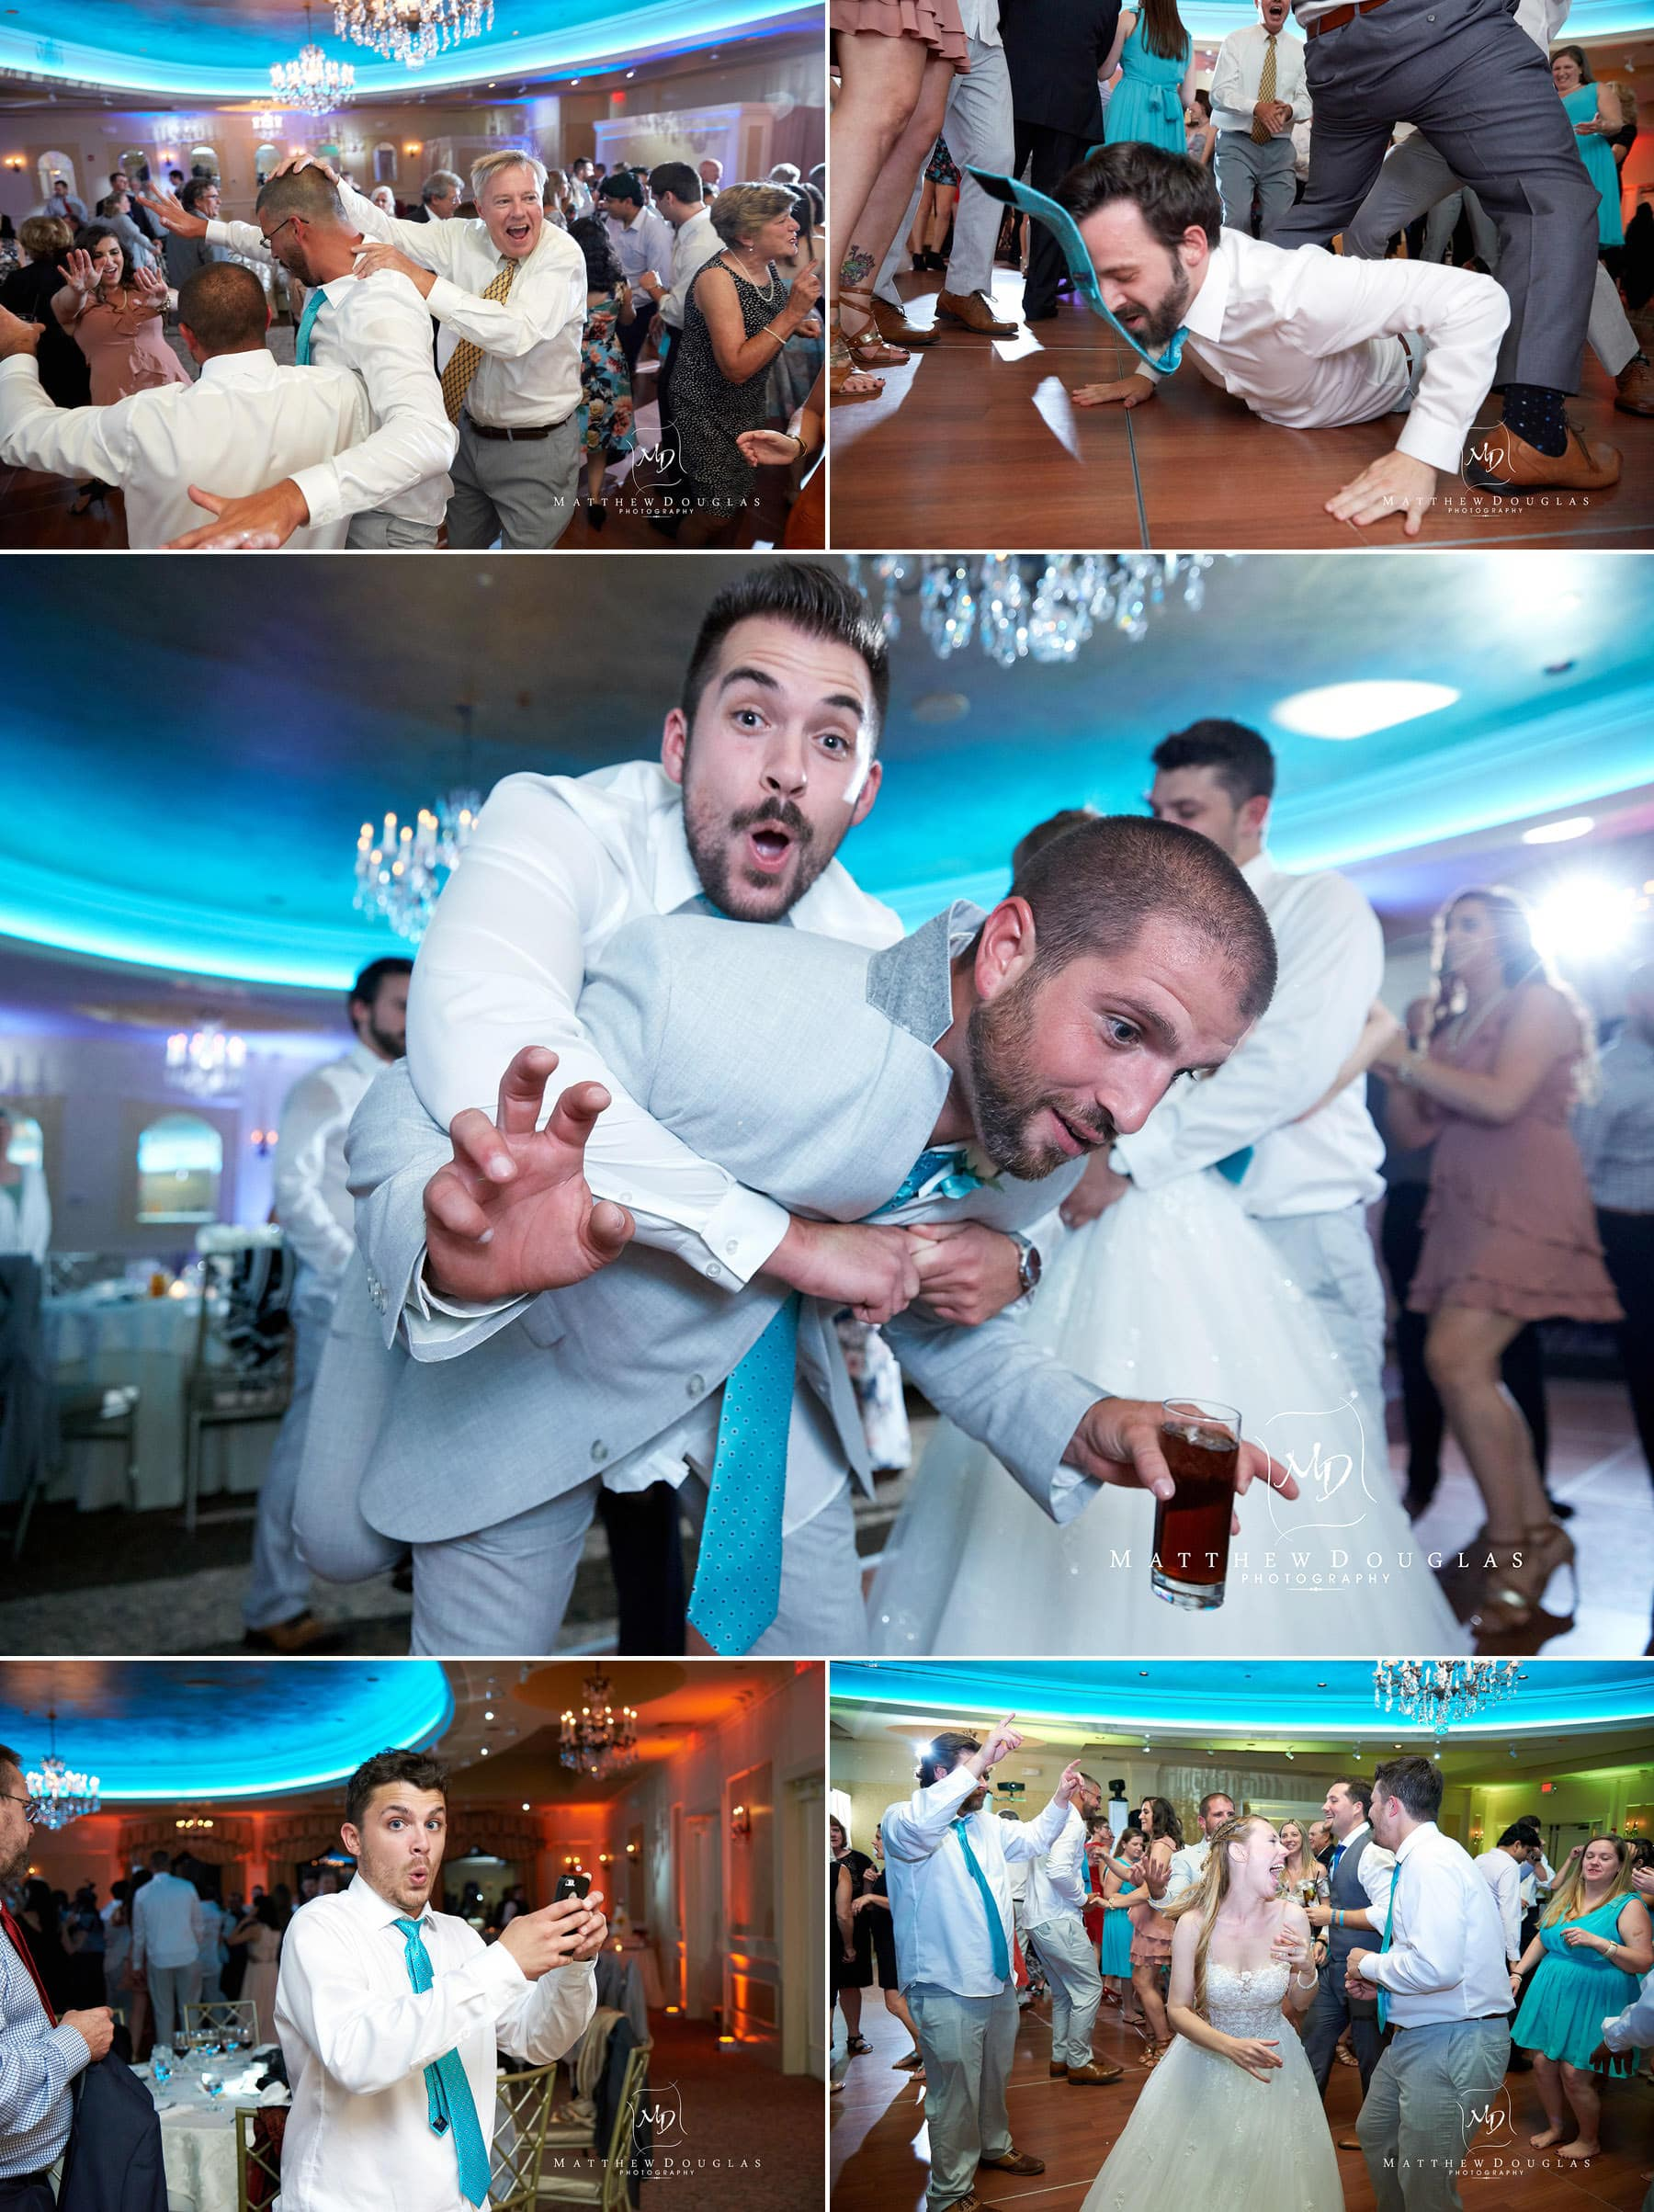 fun wedding dance floor photos at the farmhouse at the grand colonial